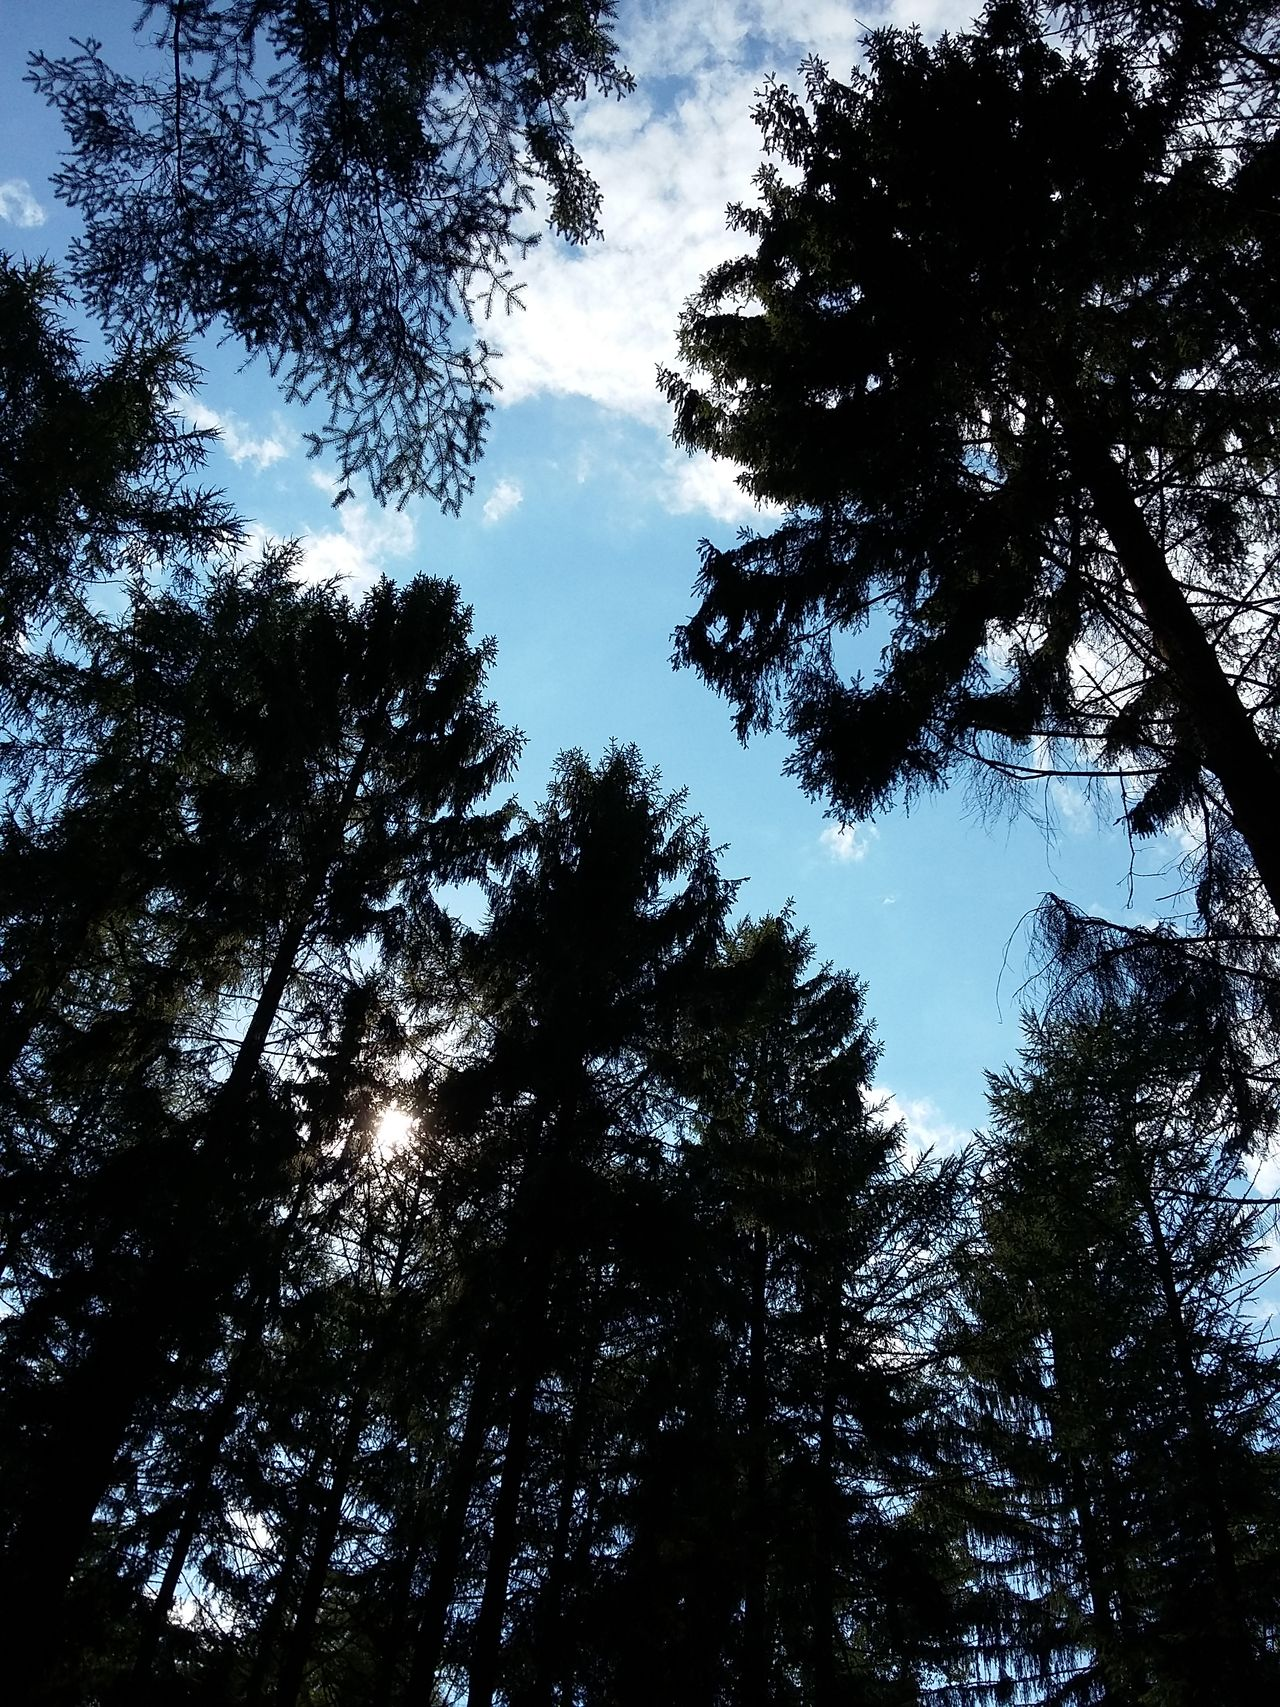 Trees I. · Germany Vareler Wald Tree Hugging A Tree Framed By Trees Forest Forest Photography Up Light And Shadow Blue Sky Sky And Clouds The Purist (no Edit, No Filter)